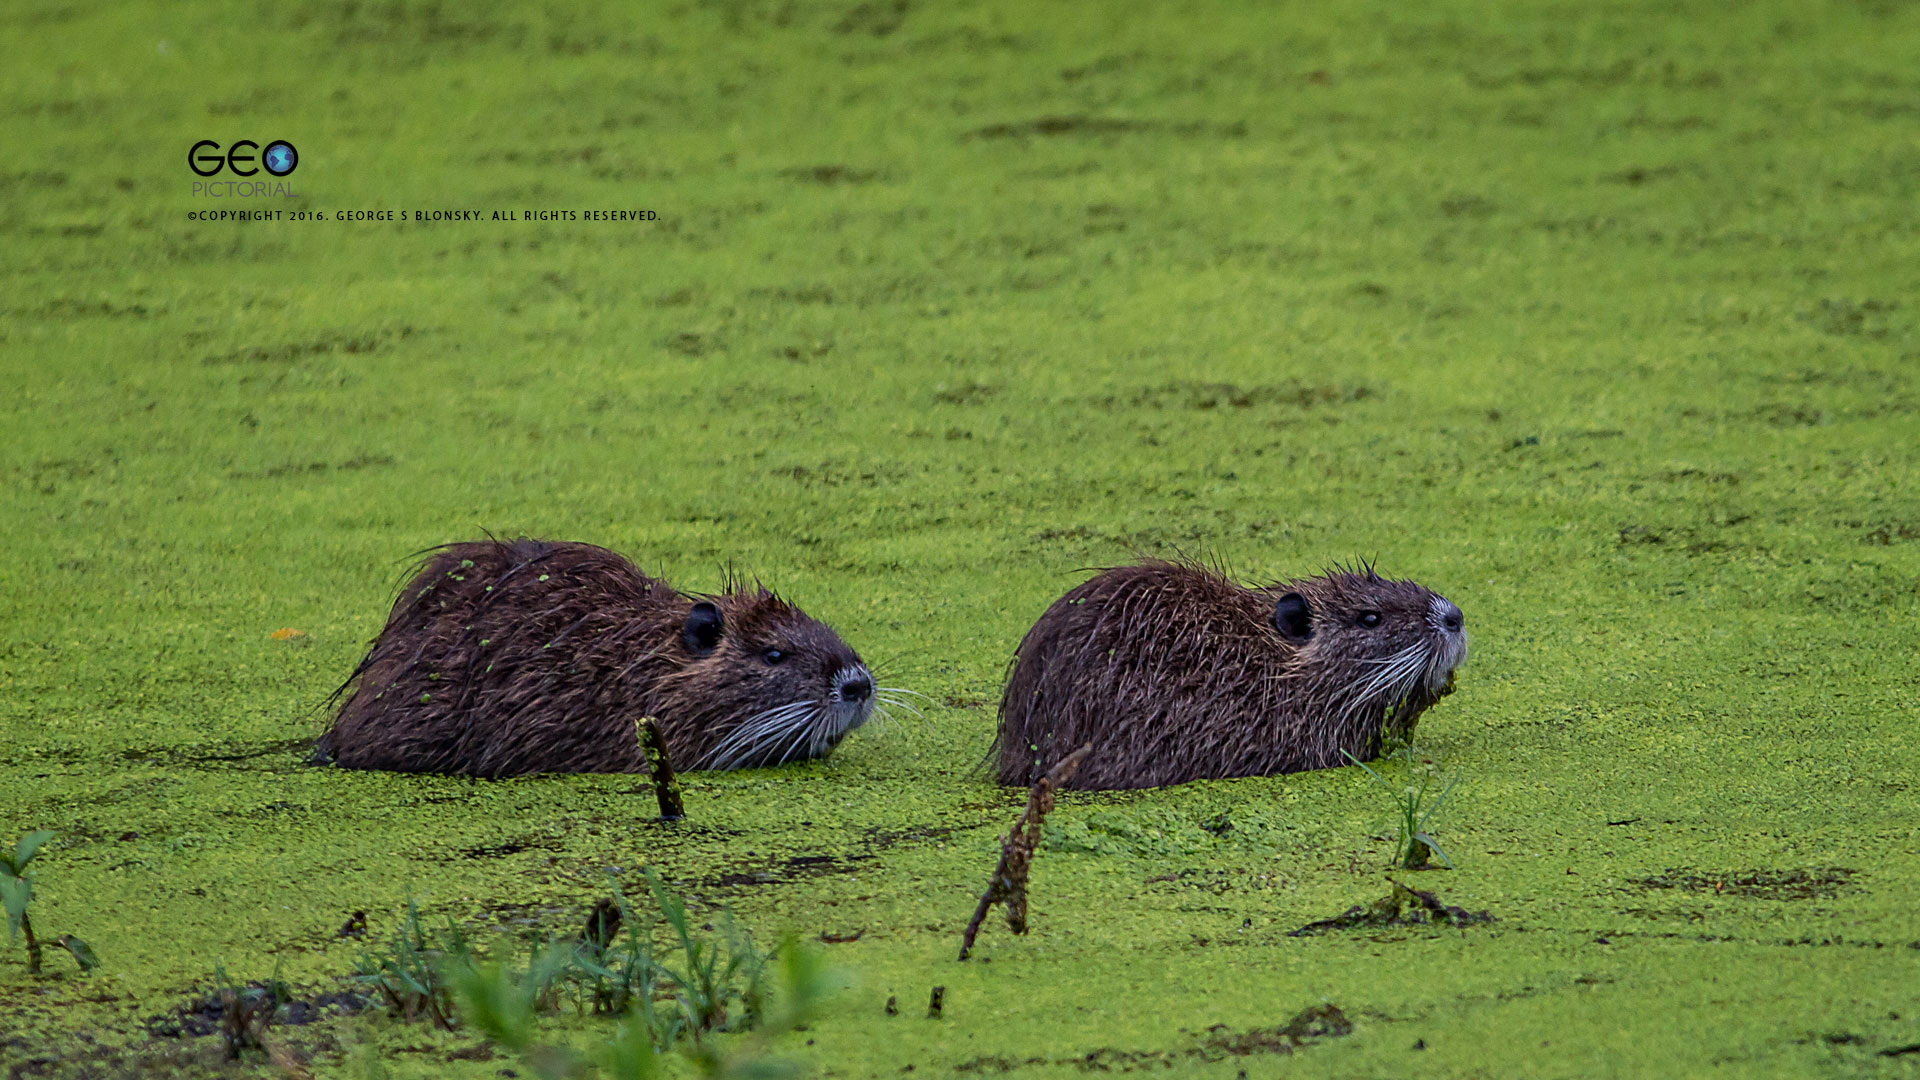 COYPU PHOTOGRAPHED DURING OUR BABY ANIMALS WILDLIFE PHOTOGRAPHY SUMMER WORKSHOP